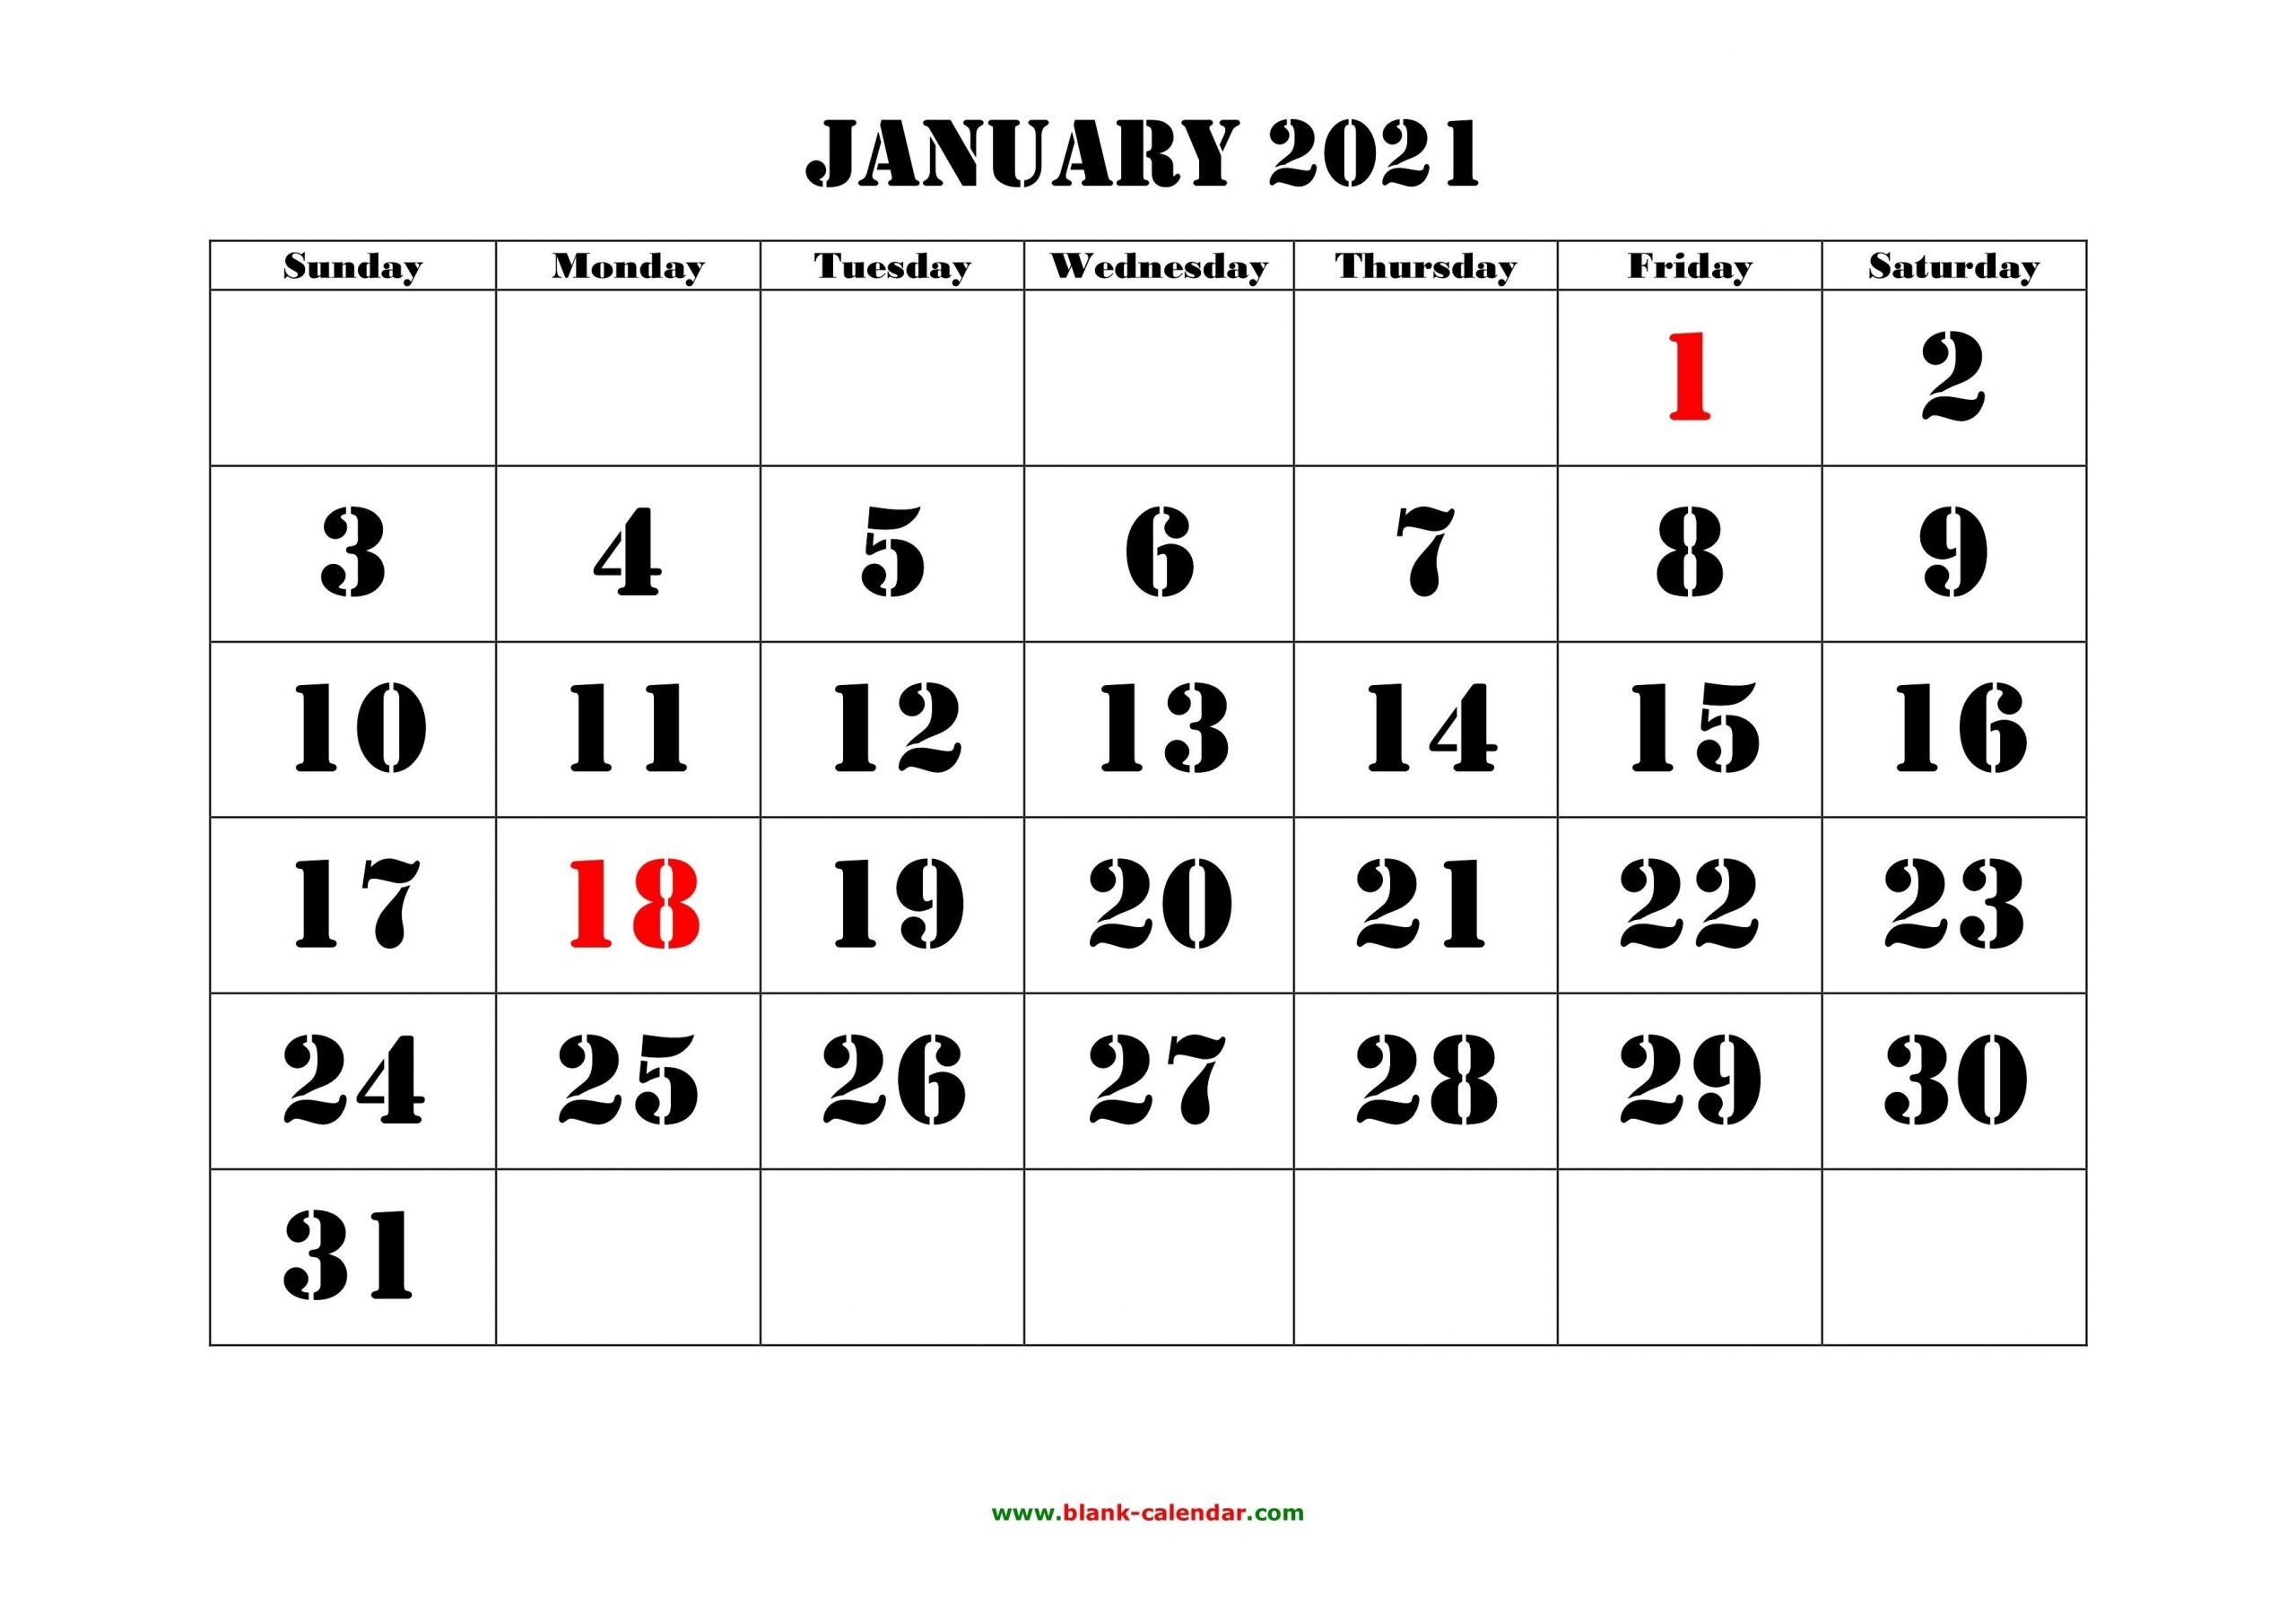 Free 2021 Yearly Calender Template / 12 Month Colorful Calendar For 2021 - Free Printable with Free Photo 2021 Calendar To Download Graphics